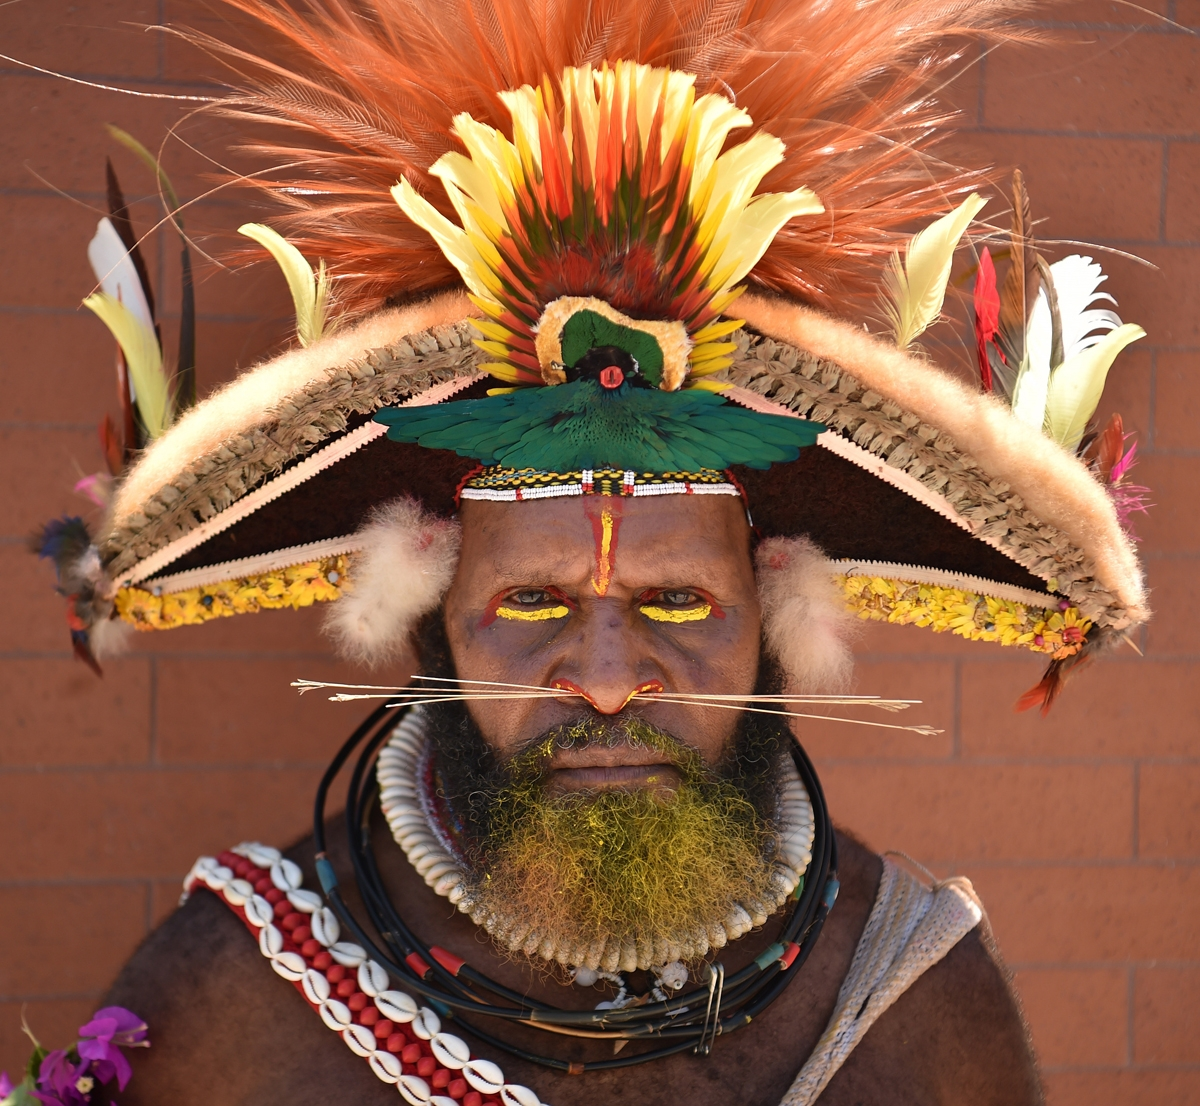 A local tribesman waits to see China's President Xi Jinping during his visit to the Butuka Academy school in Port Moresby on November 16, 2018, ahead of the Asia-Pacific Economic Cooperation (APEC) summit.